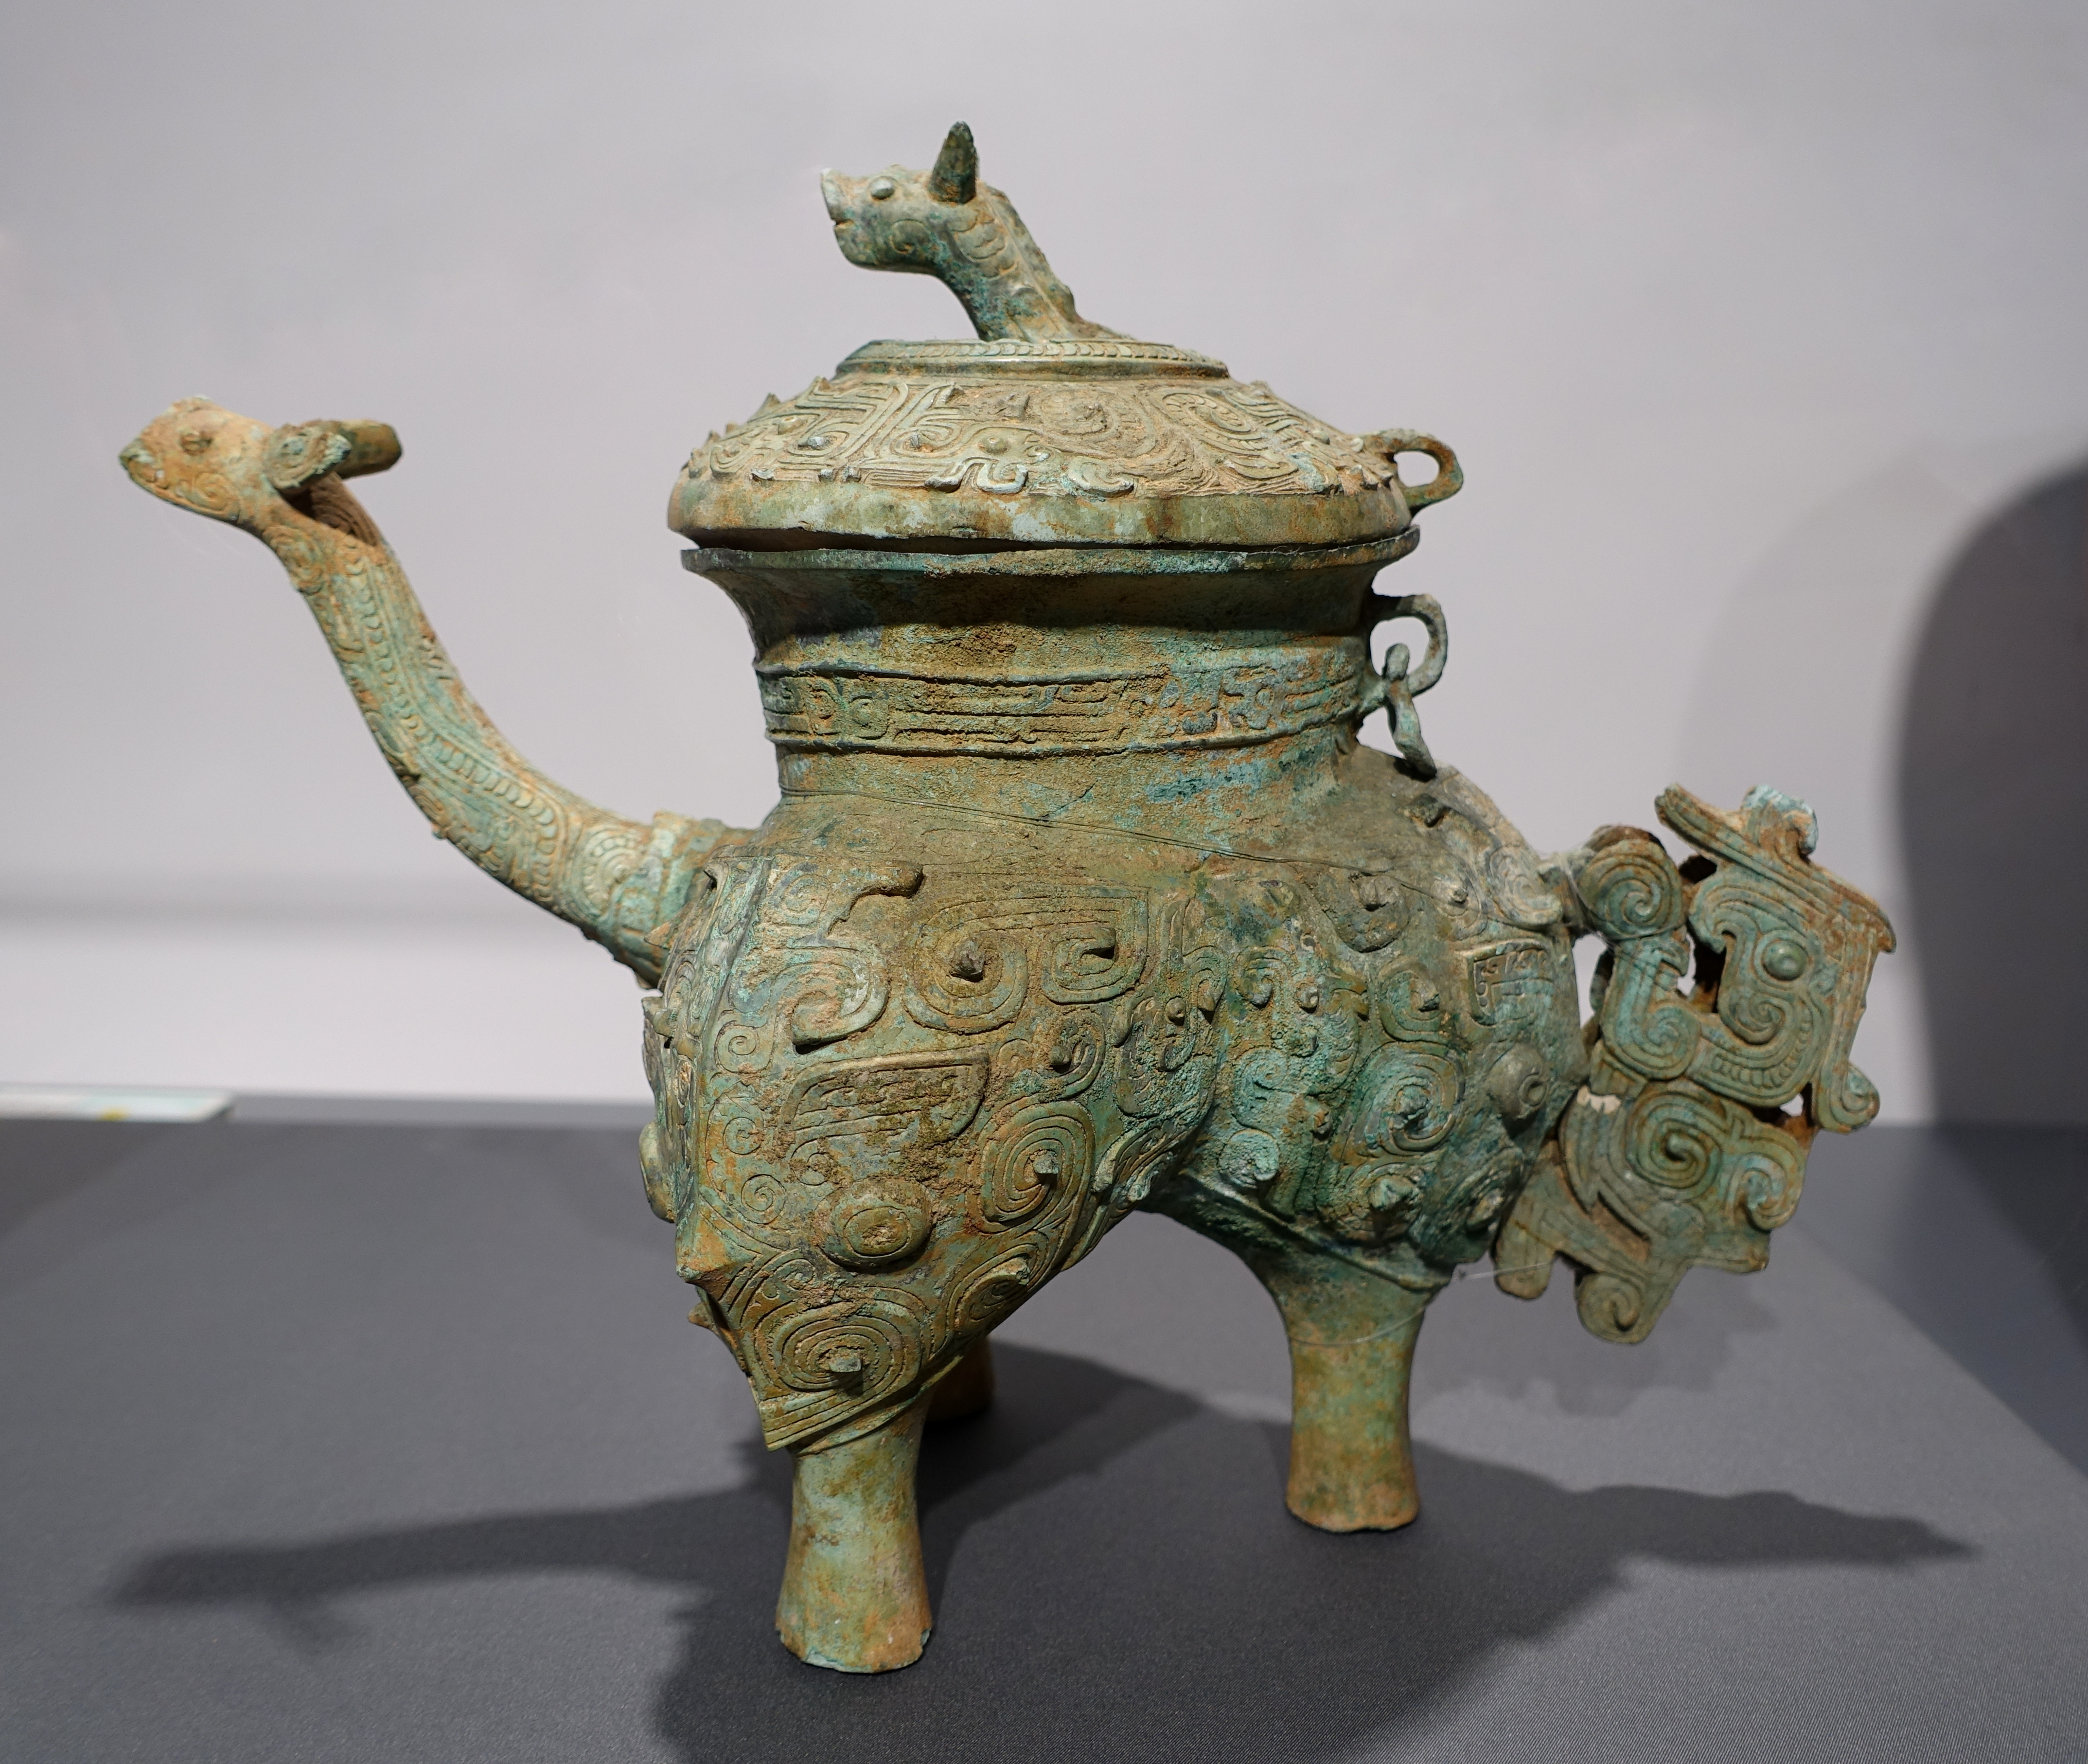 external image Bronze_he_ewer_with_animal_mask_design%2C_Bronze_period%2C_from_site_of_Rosin_Factory%2C_Xinyi_-_Hong_Kong_Museum_of_History_-_DSC00741.JPG